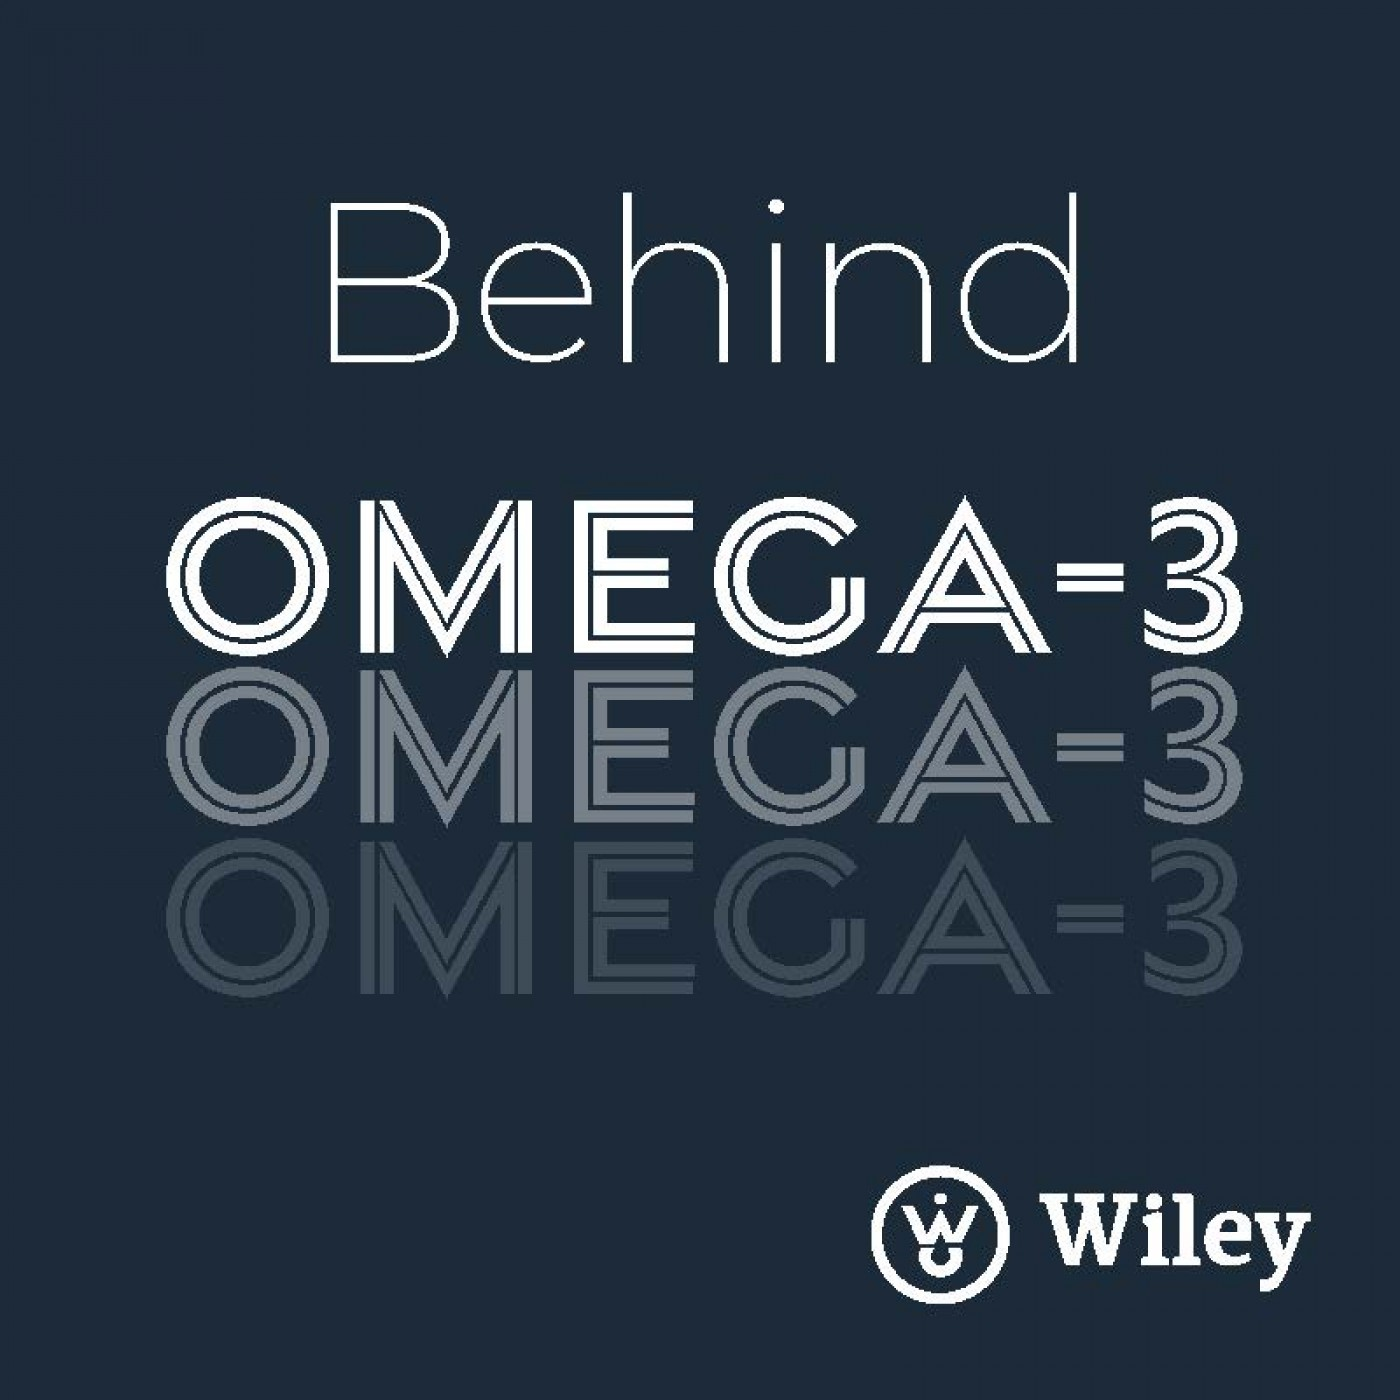 Using Omega-3 testing to identify and personalize your optimal omega-3 level